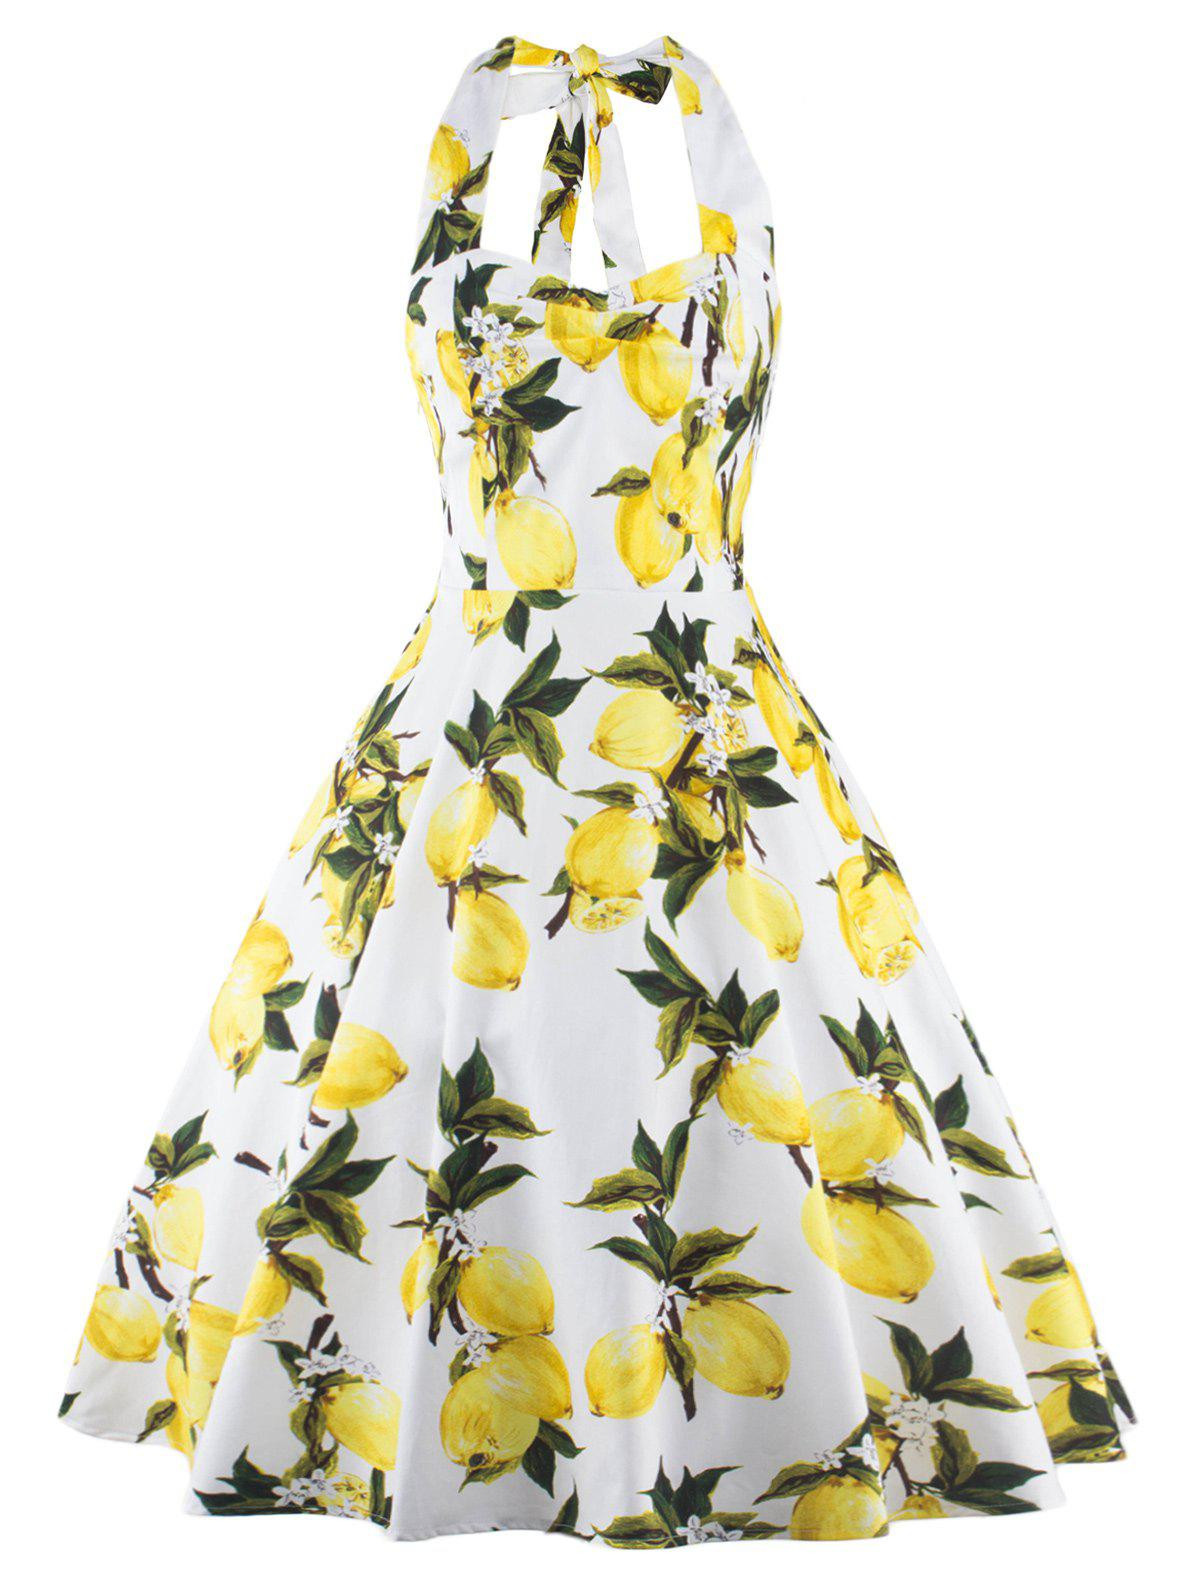 Vintage Halter Neck Lemon Print Dress For Women - YELLOW L